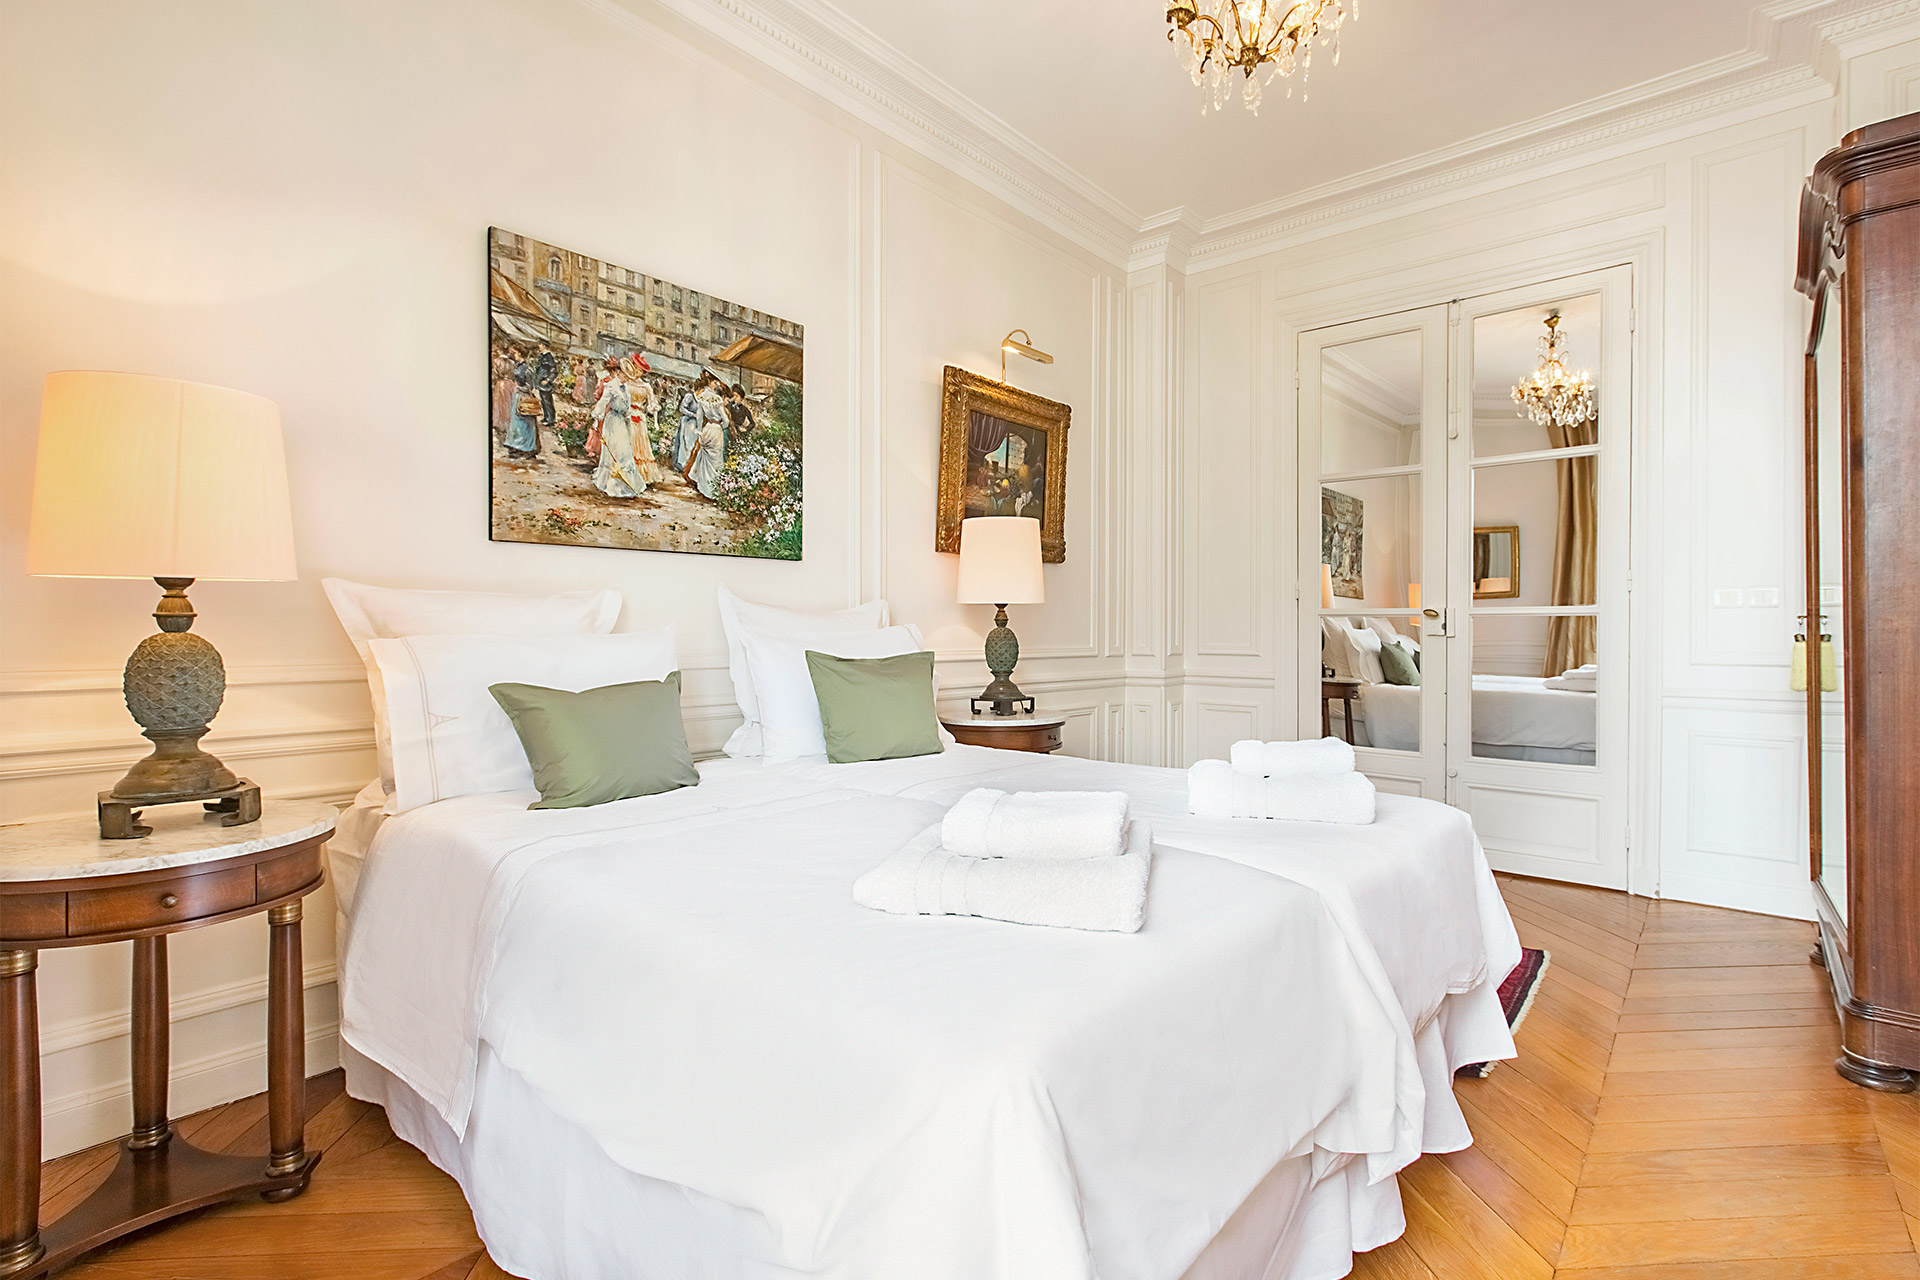 Comfortable twin beds in the second bedroom of the Chateauneuf vacation rental offered by Paris Perfect